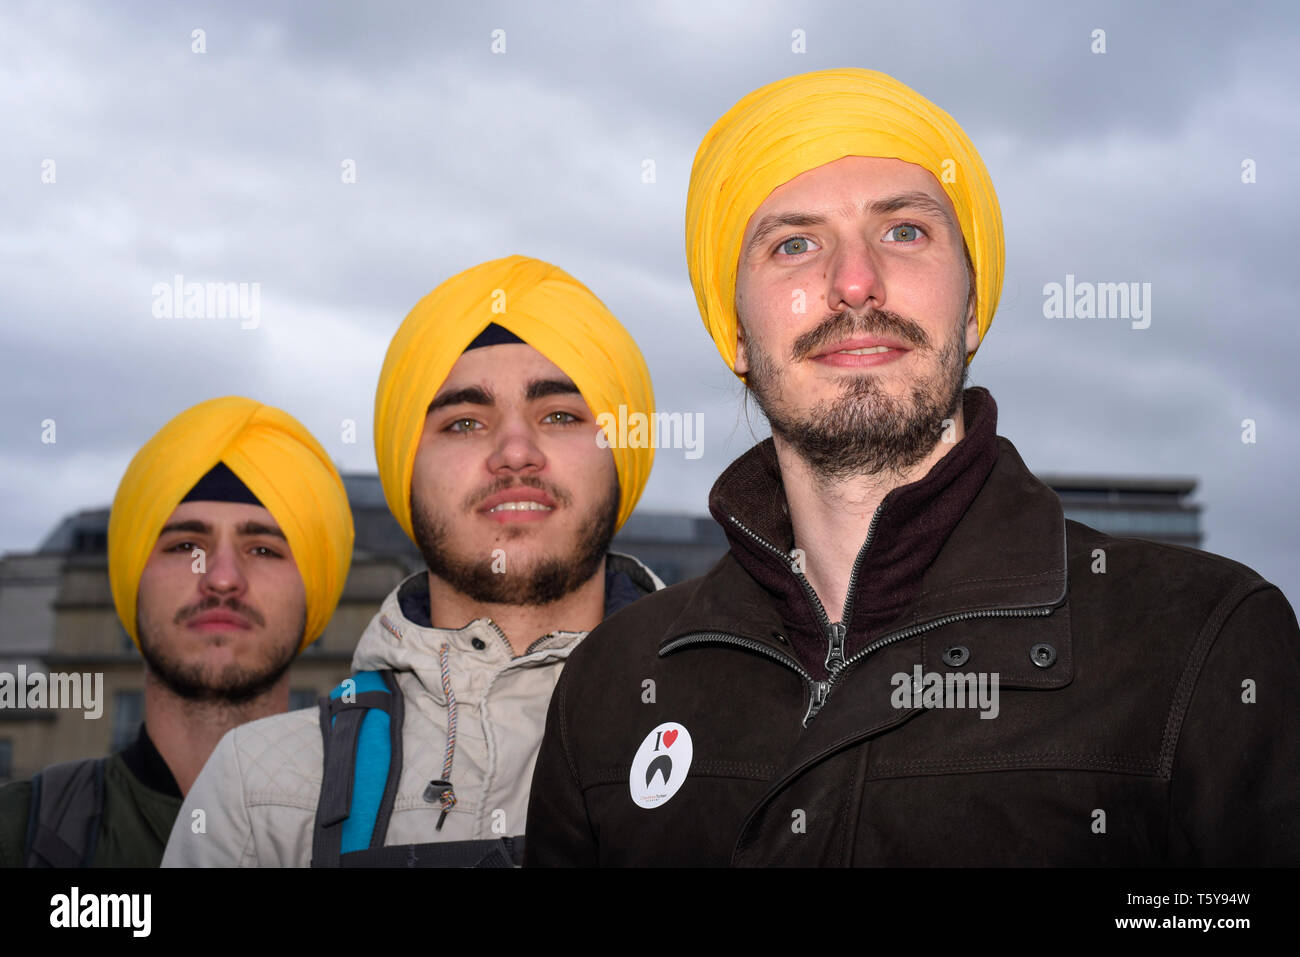 London, UK.  27 April 2019. Rares, Razvan and Artur, tourists from Romania, join in the festivities wearing turbans during the festival of Vaisakhi in Trafalgar Square, hosted by the Mayor of London.  For Sikhs and Punjabis, the festival celebrates the spring harvest and commemorates the founding of the Khalsa community over 300 years ago.  Credit: Stephen Chung / Alamy Live News - Stock Image